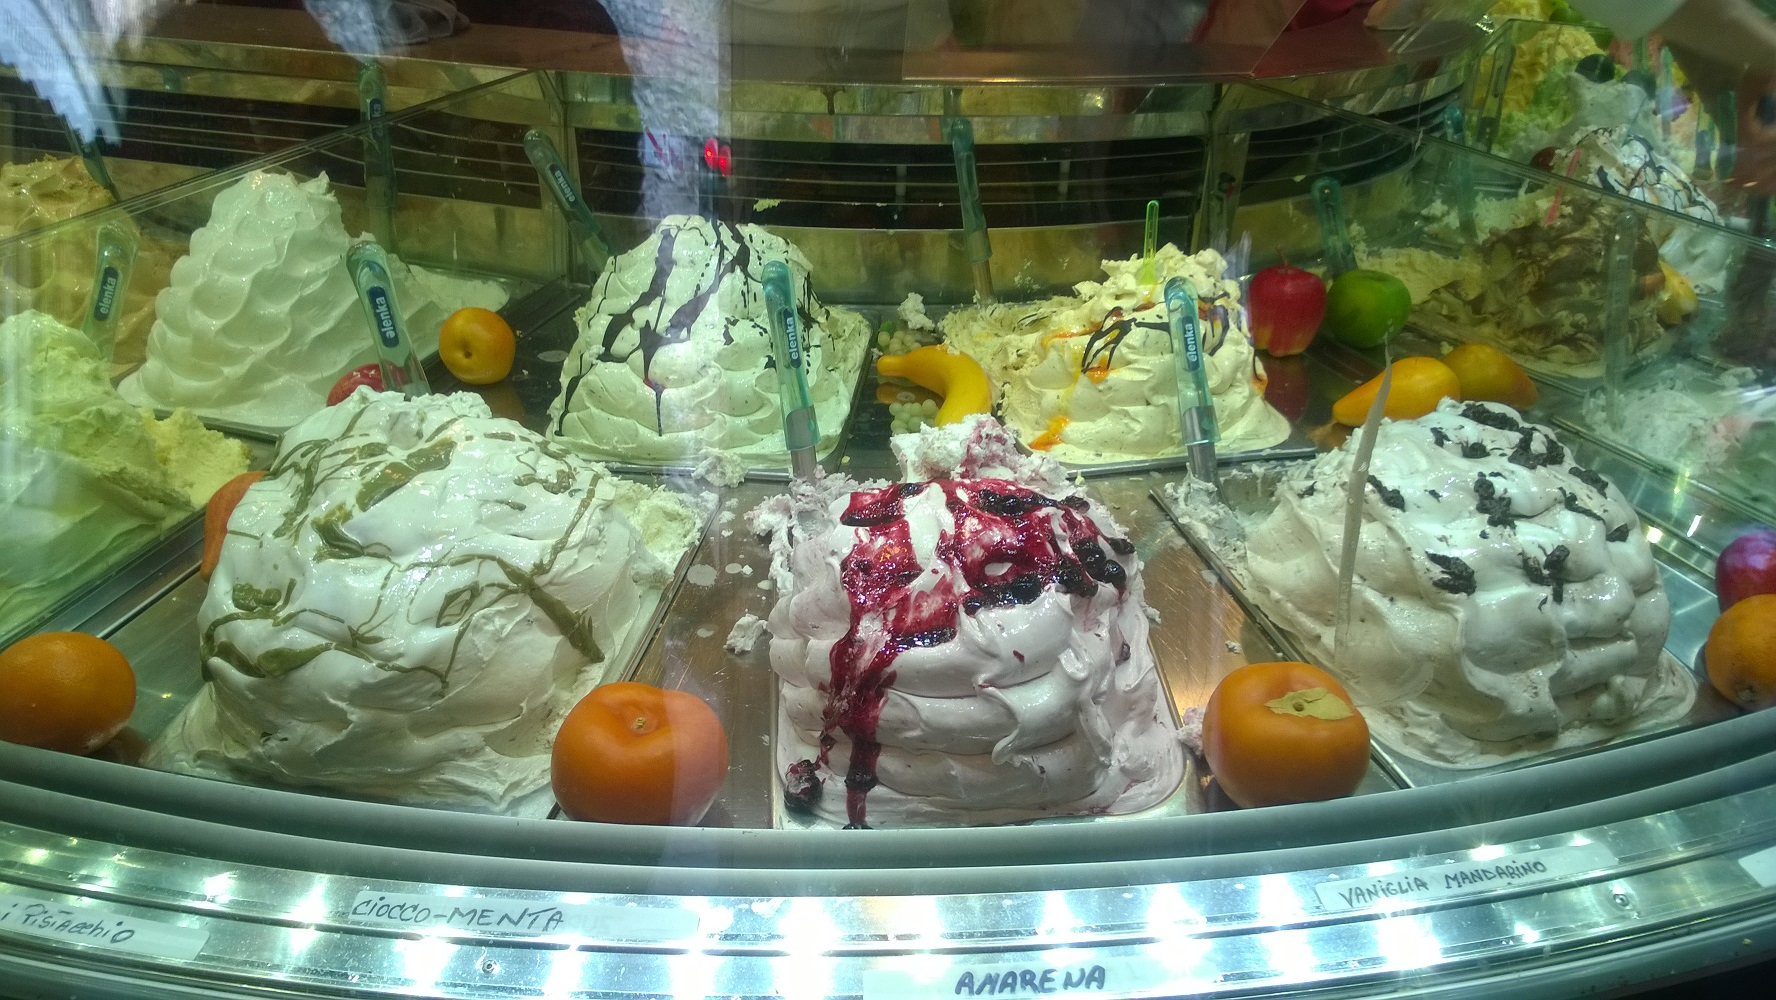 Mirko, since 1988, serves nearly 100 flavors daily in Sirmione!